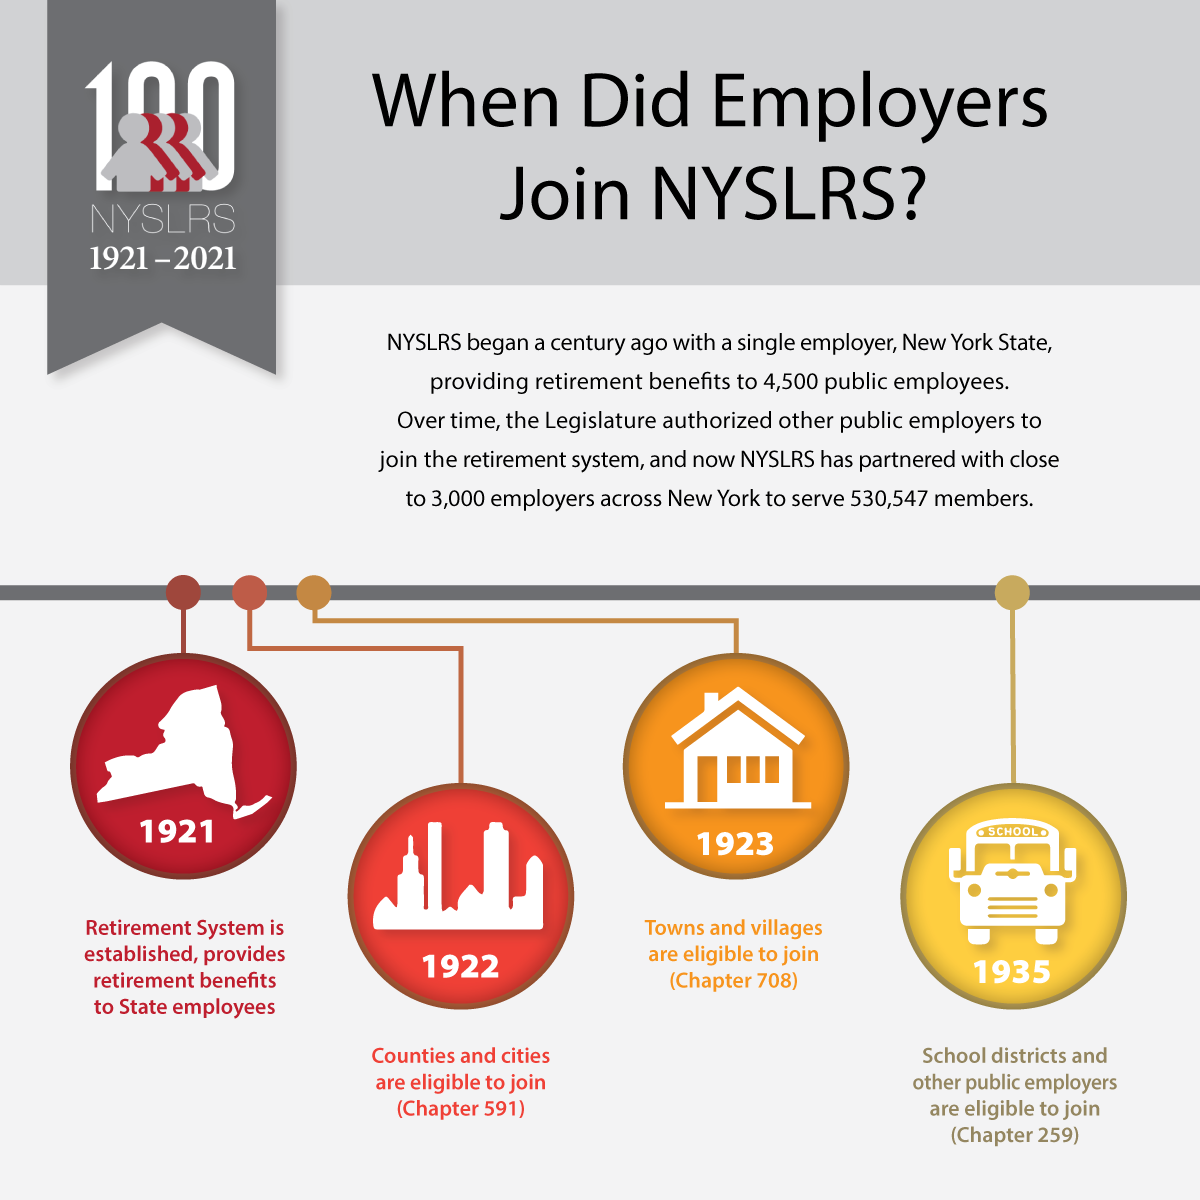 NYSLRS and Public Employers partnership